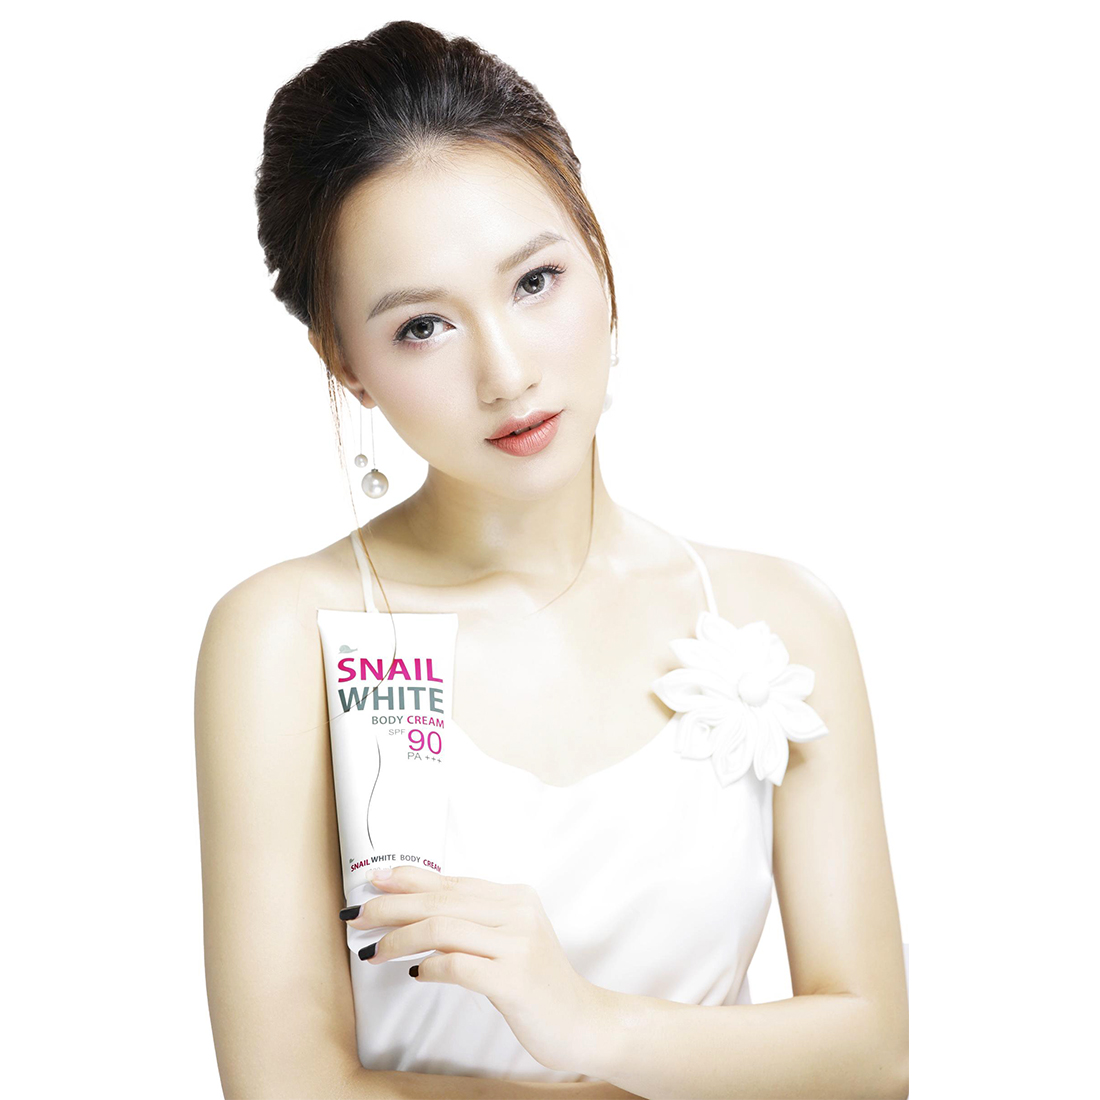 SNAIL WHITE BODY CREAM